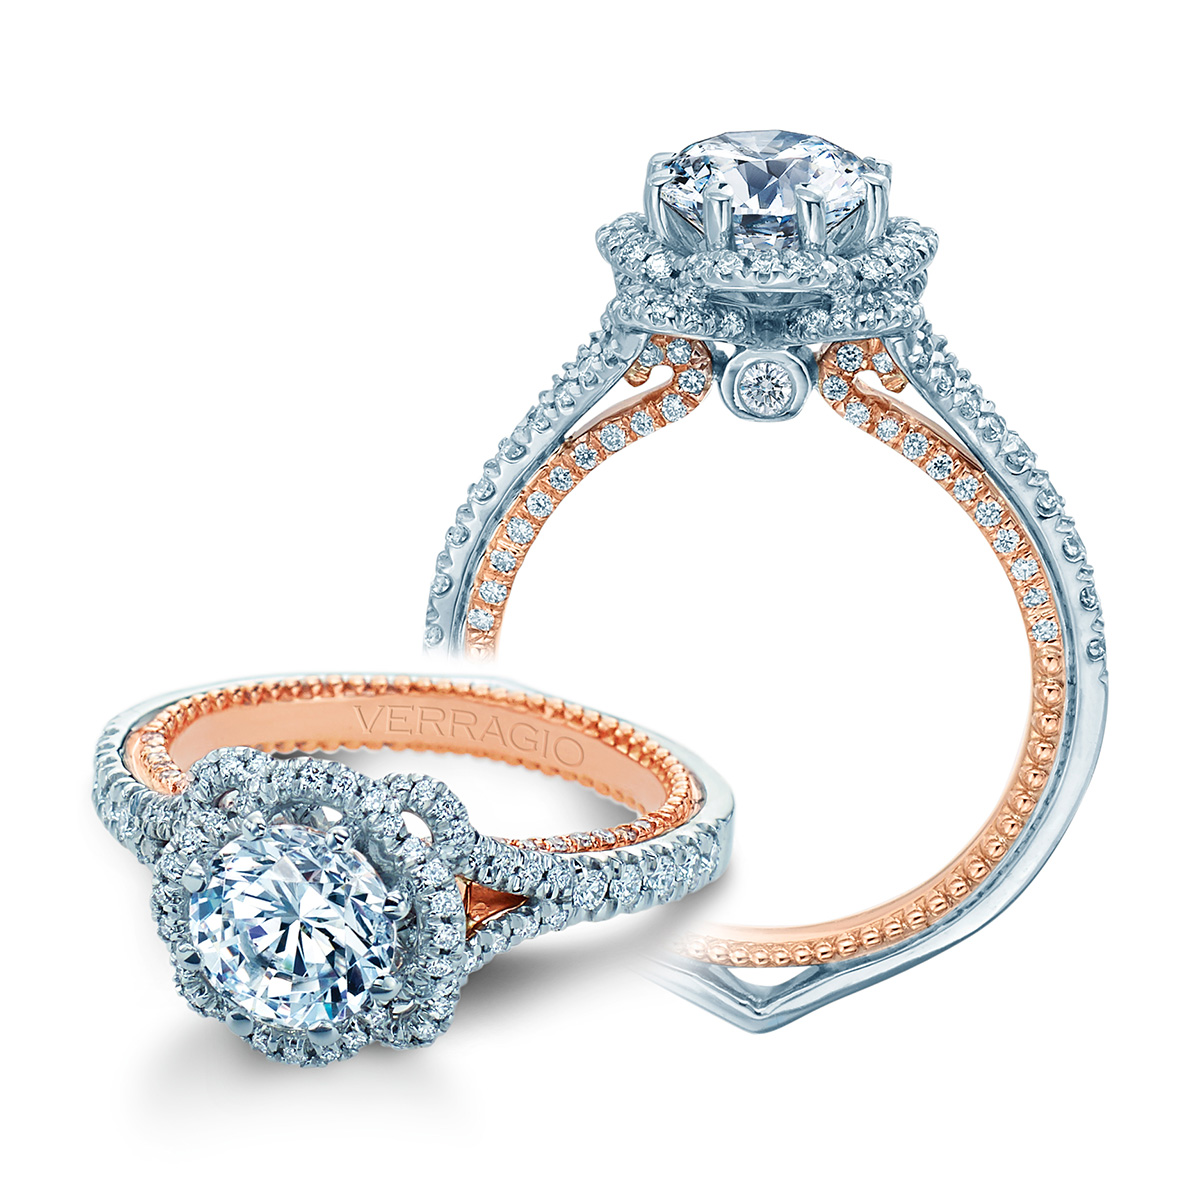 5bde7e4b1a66c Verragio Couture-0444-2WR 18 Karat Engagement Ring